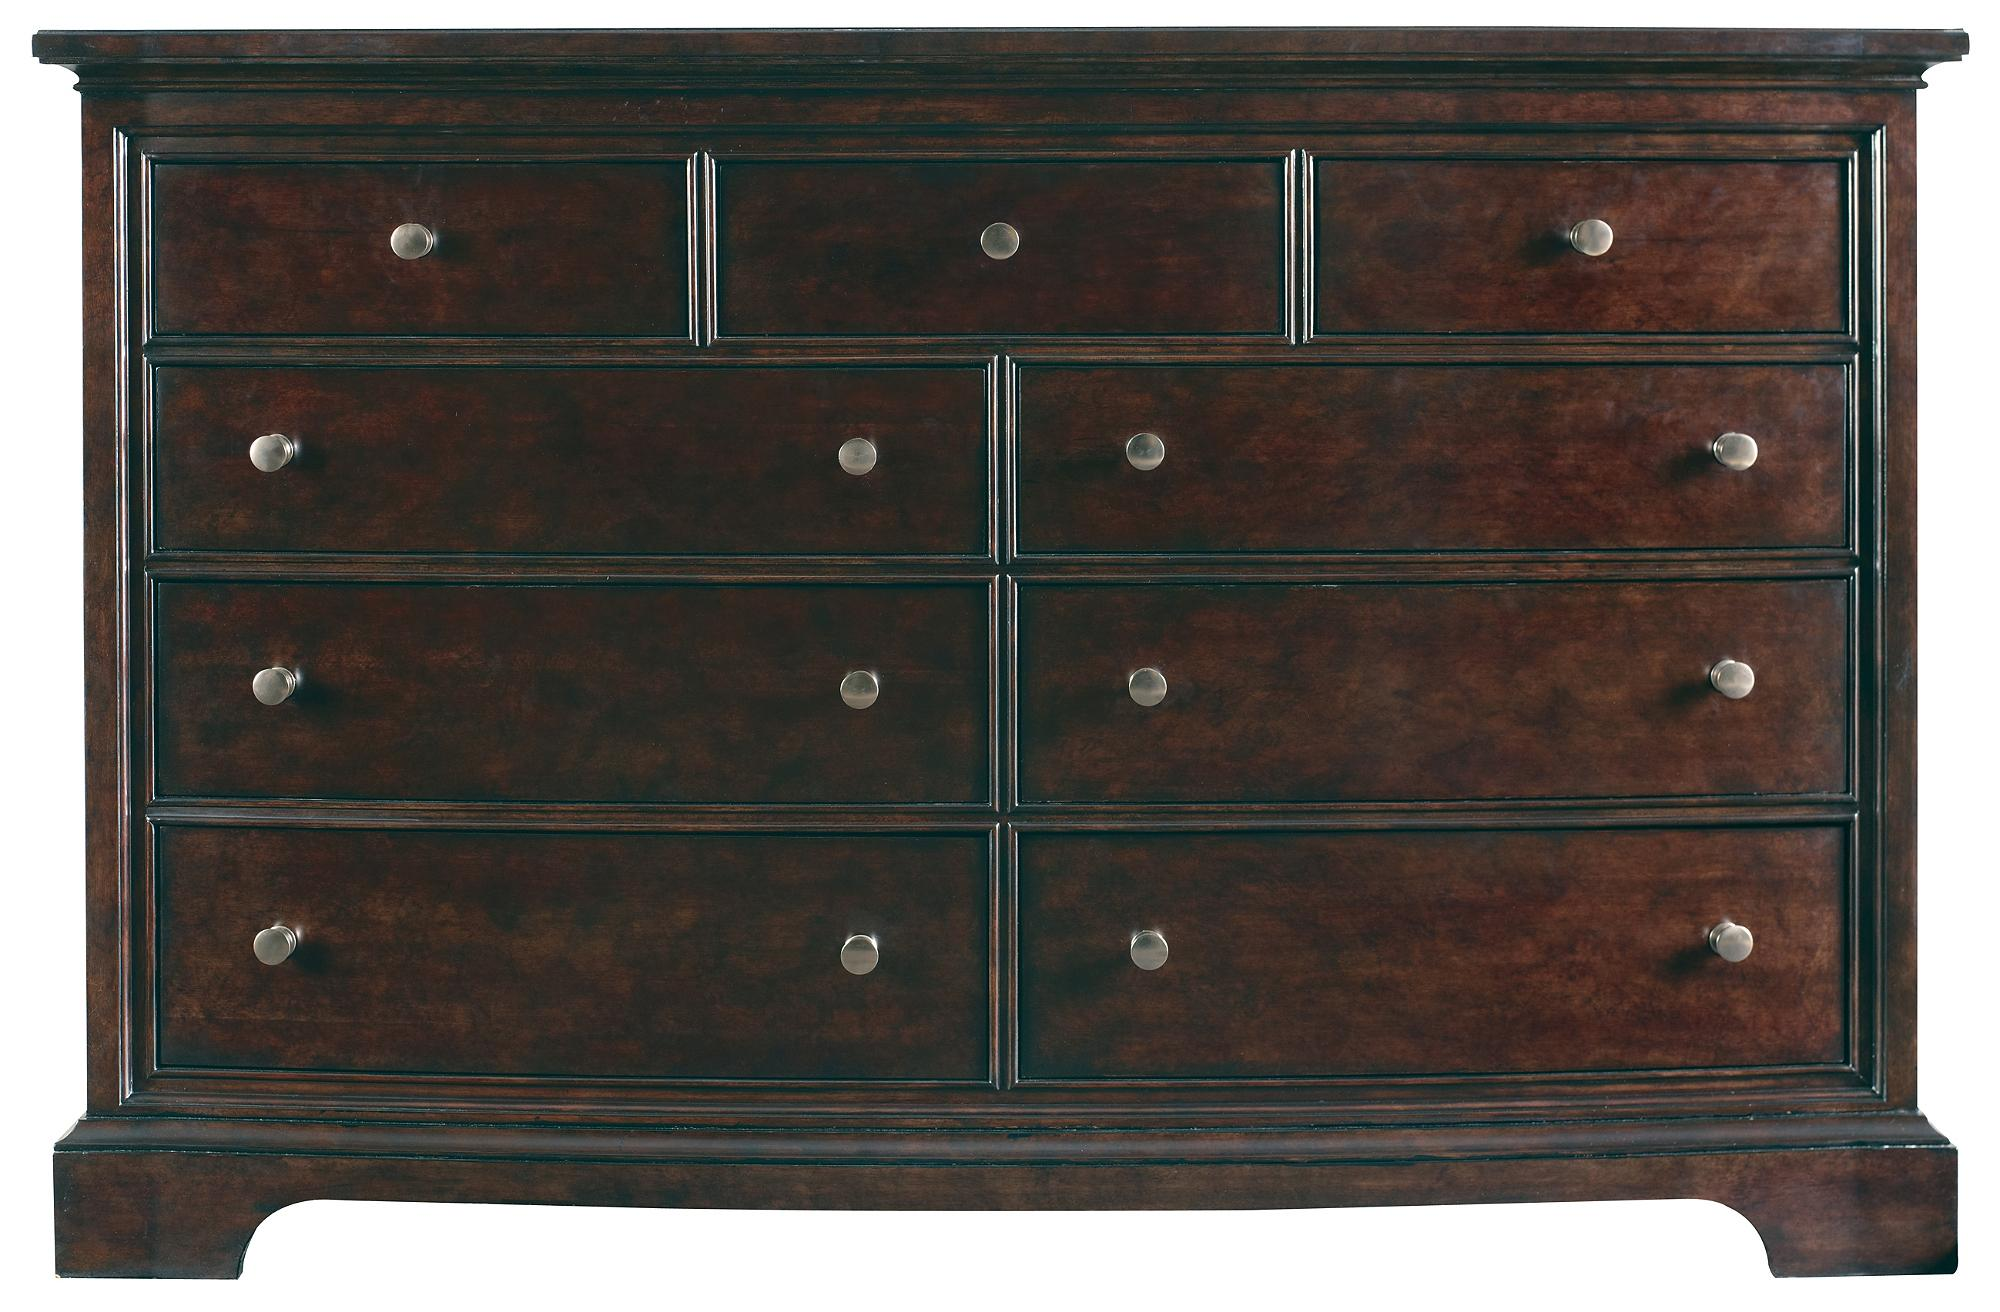 Stanley Furniture Transitional Dresser - Item Number: 042-13-05